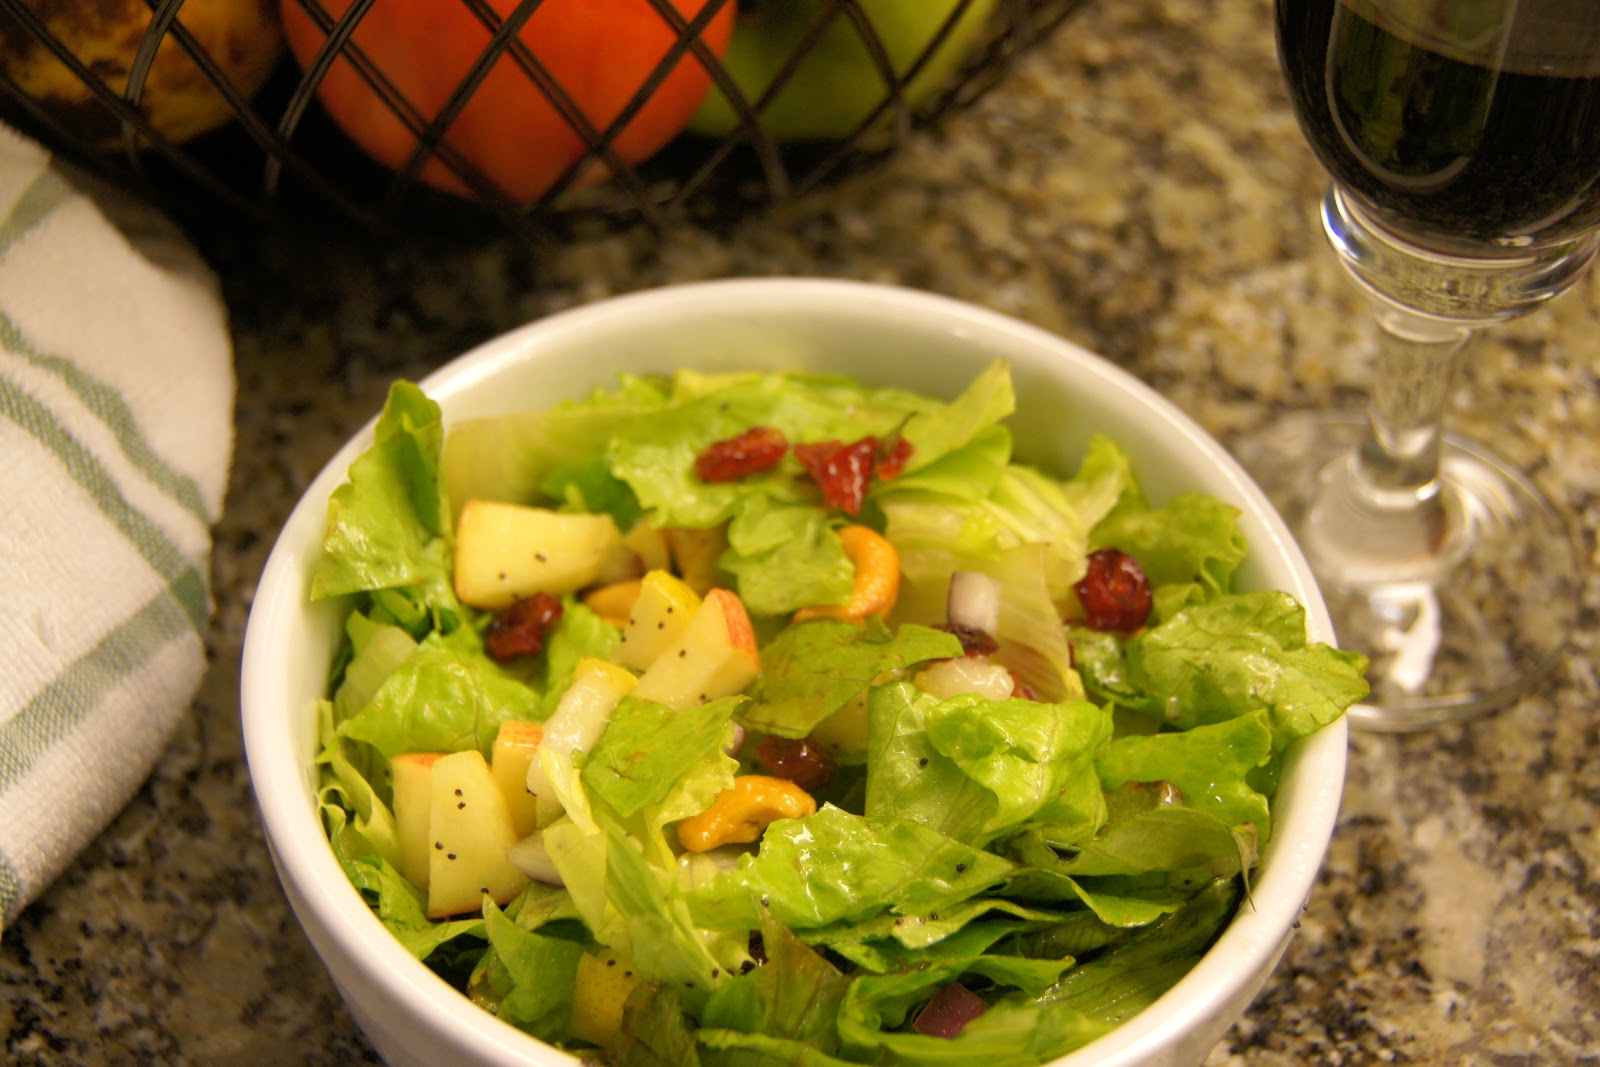 Family Food Finds: Autumn Salad with Lemon Poppy Seed Dressing